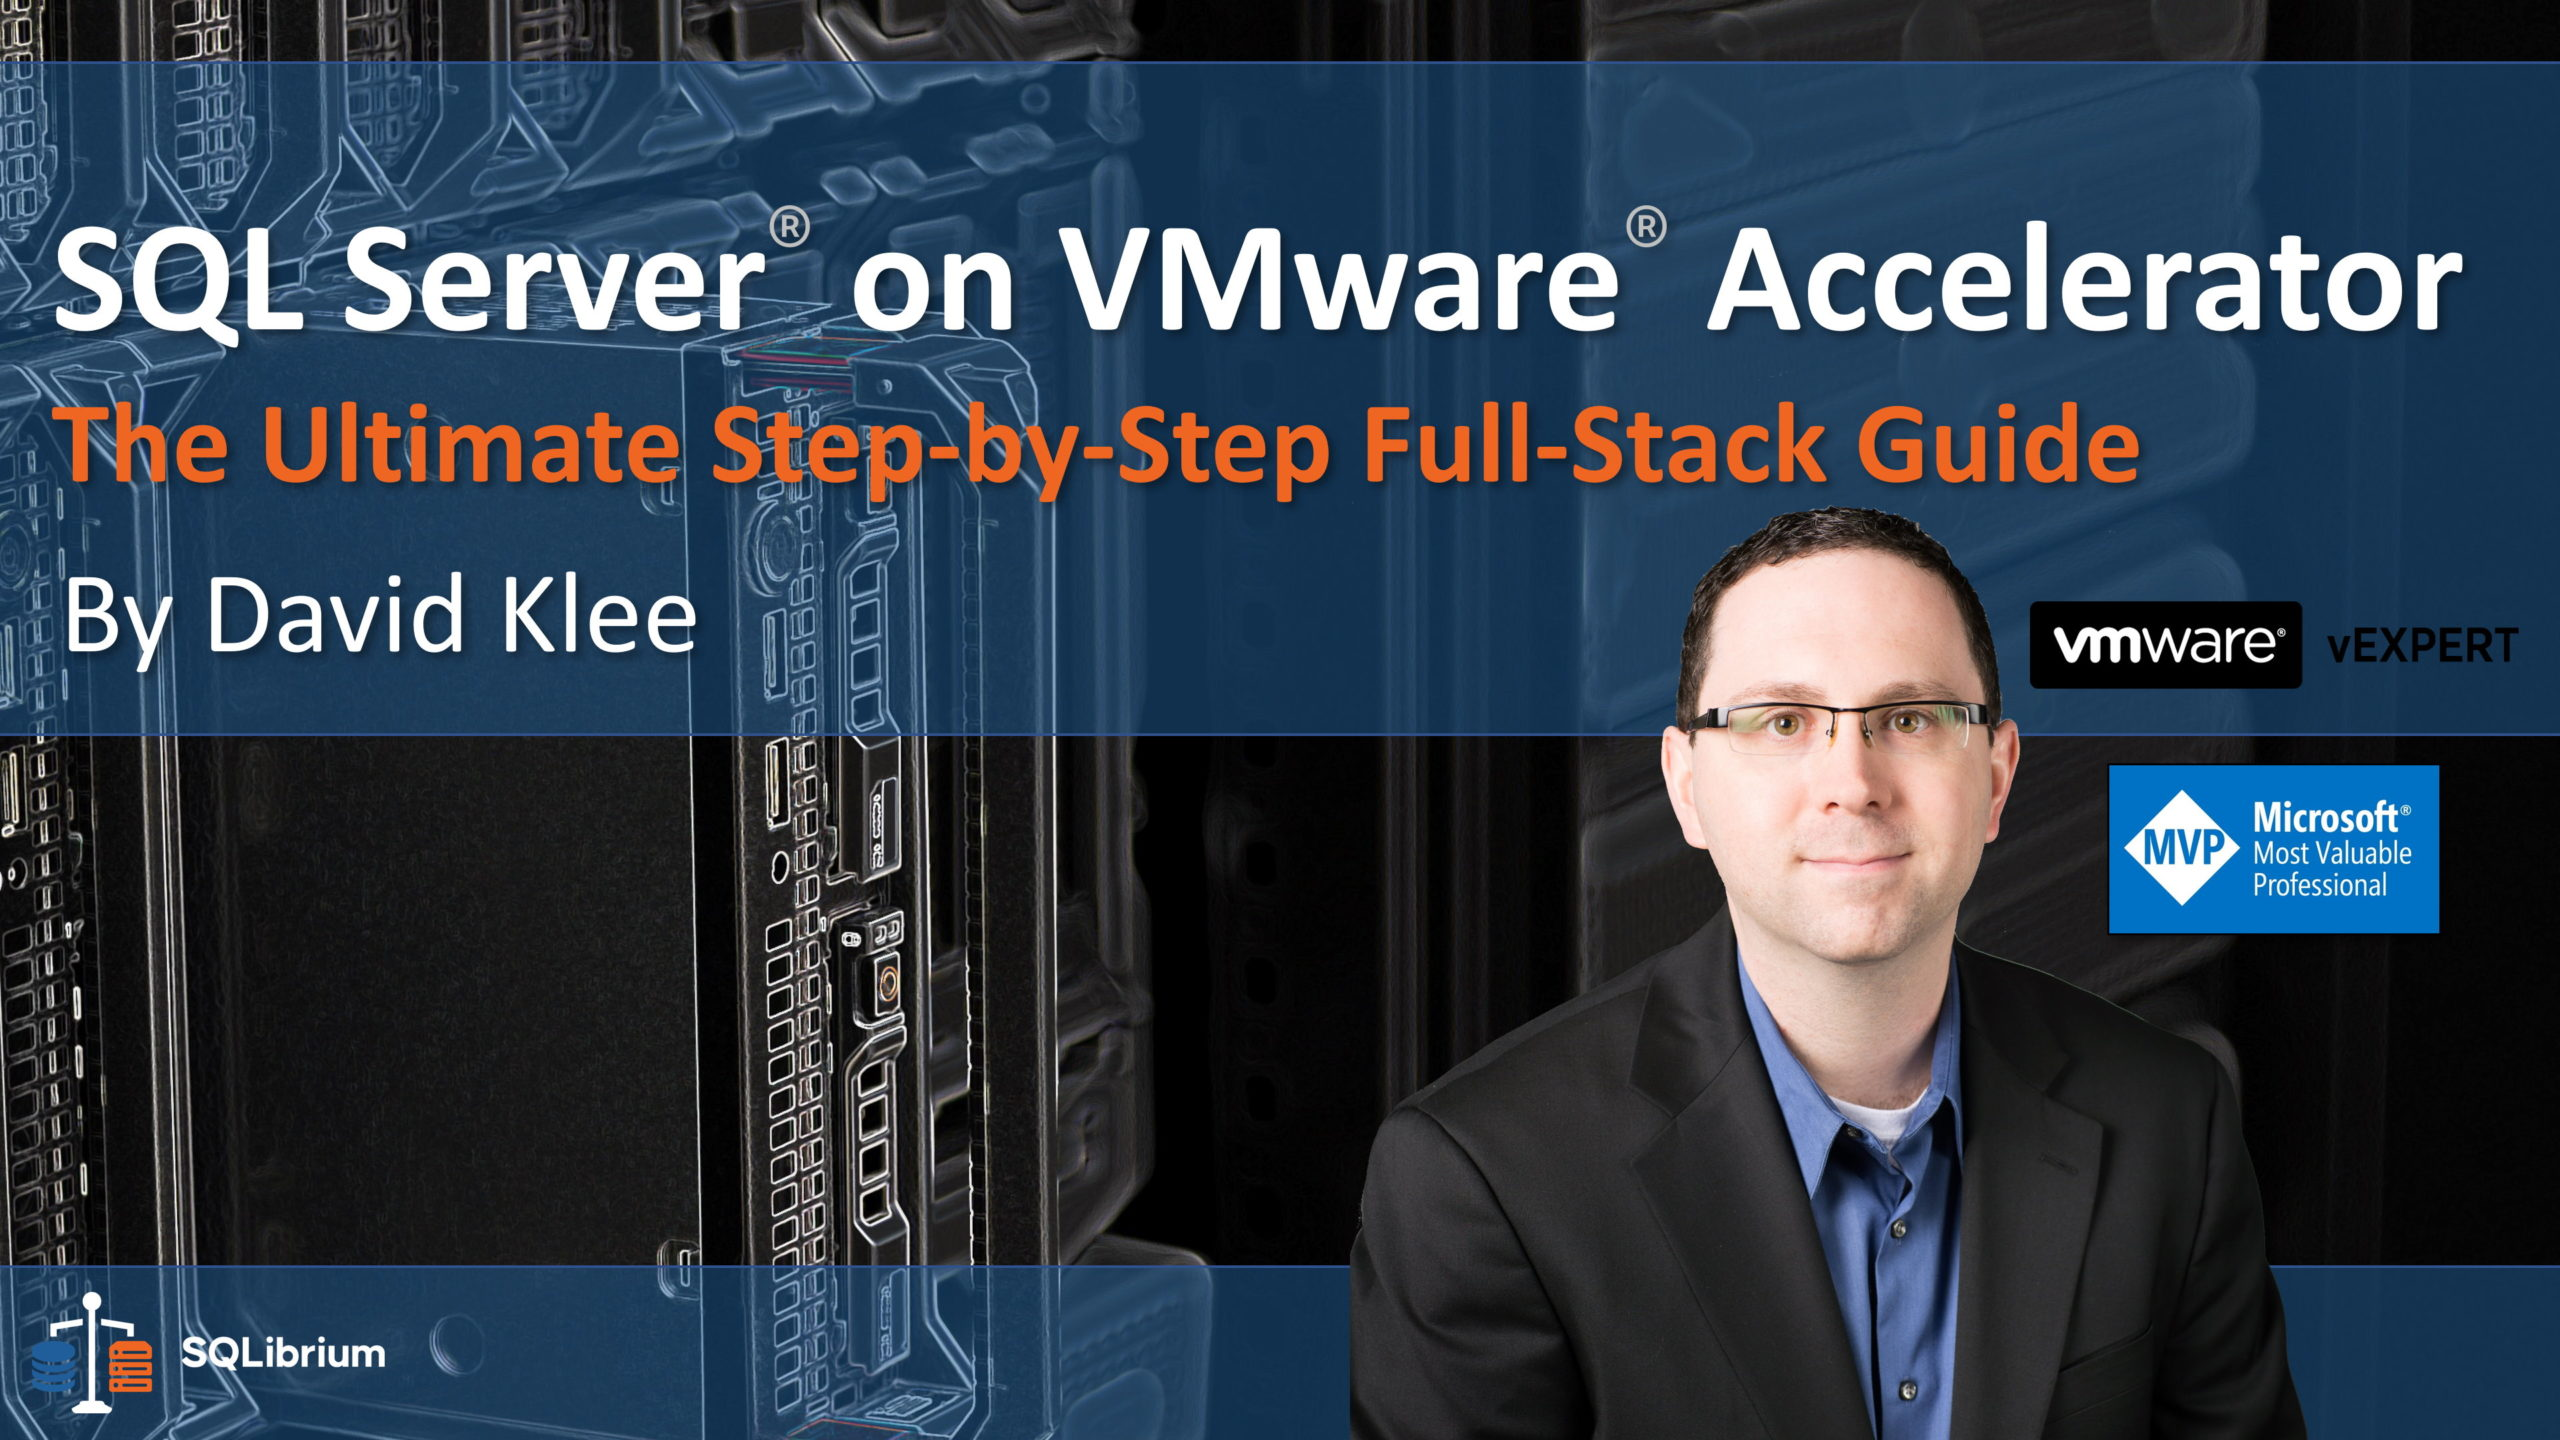 SQL Server on VMware Accelerator